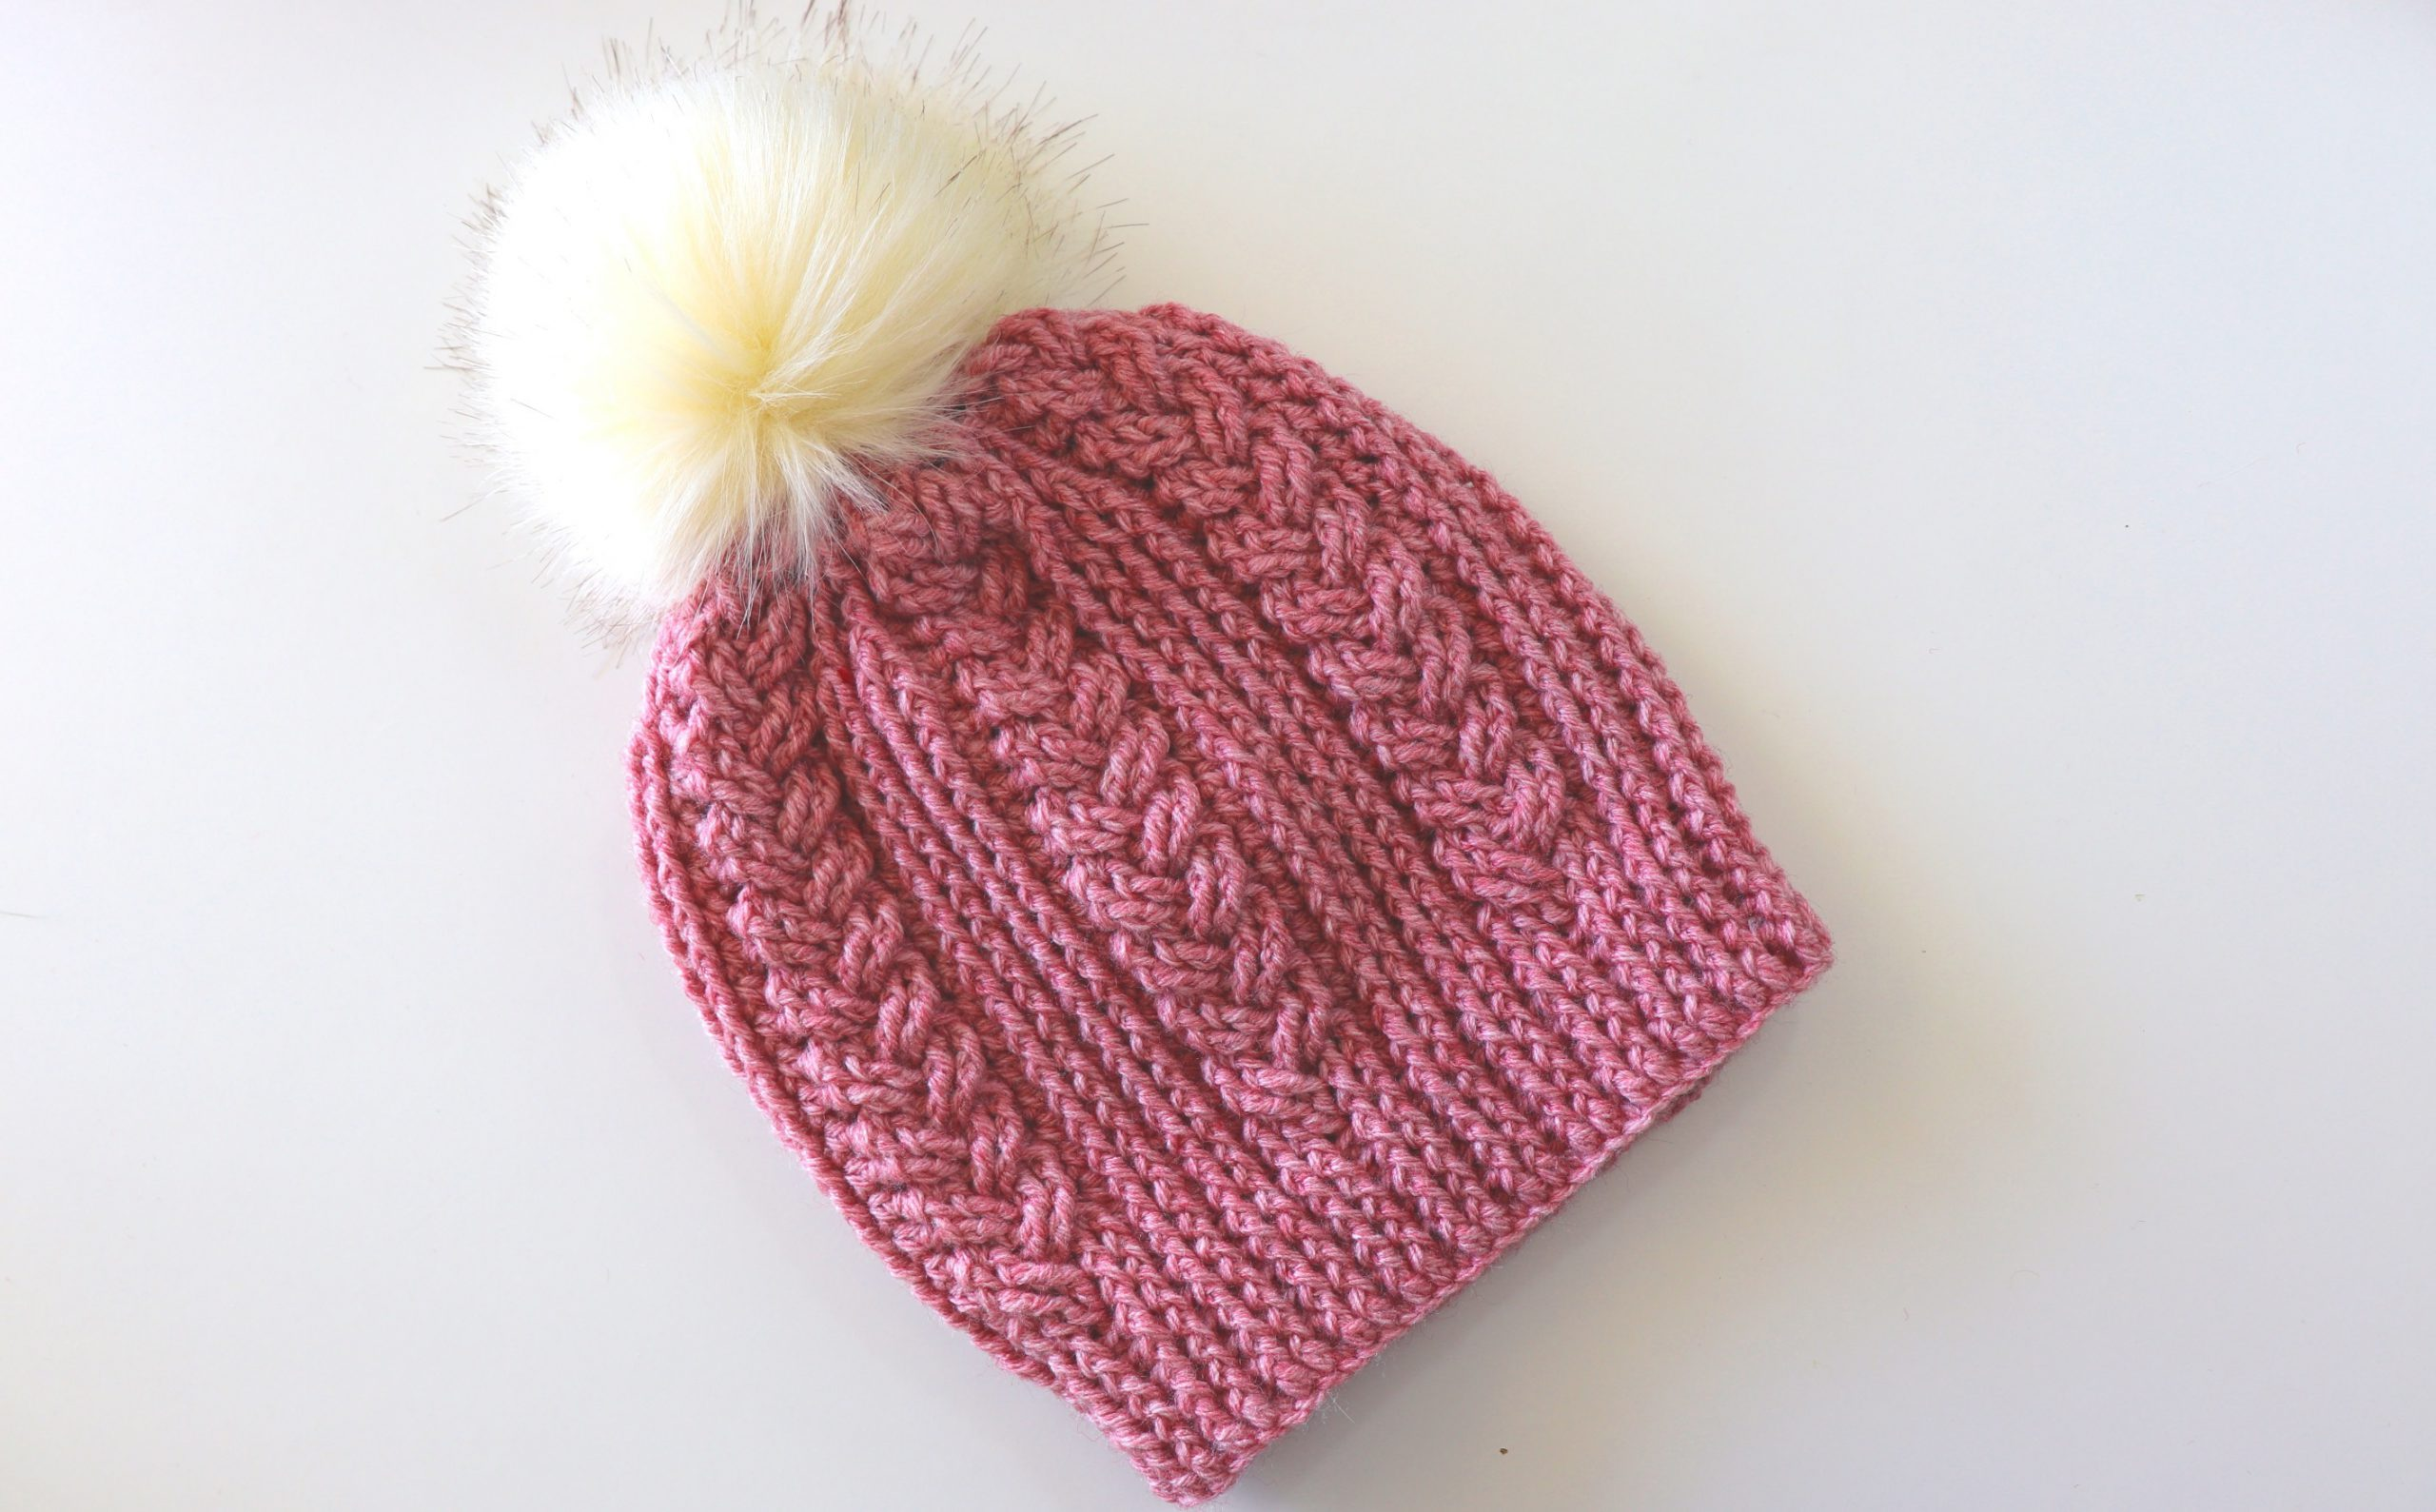 Crochet Pretty Cable Hat / Beginner Friendly Tutorial